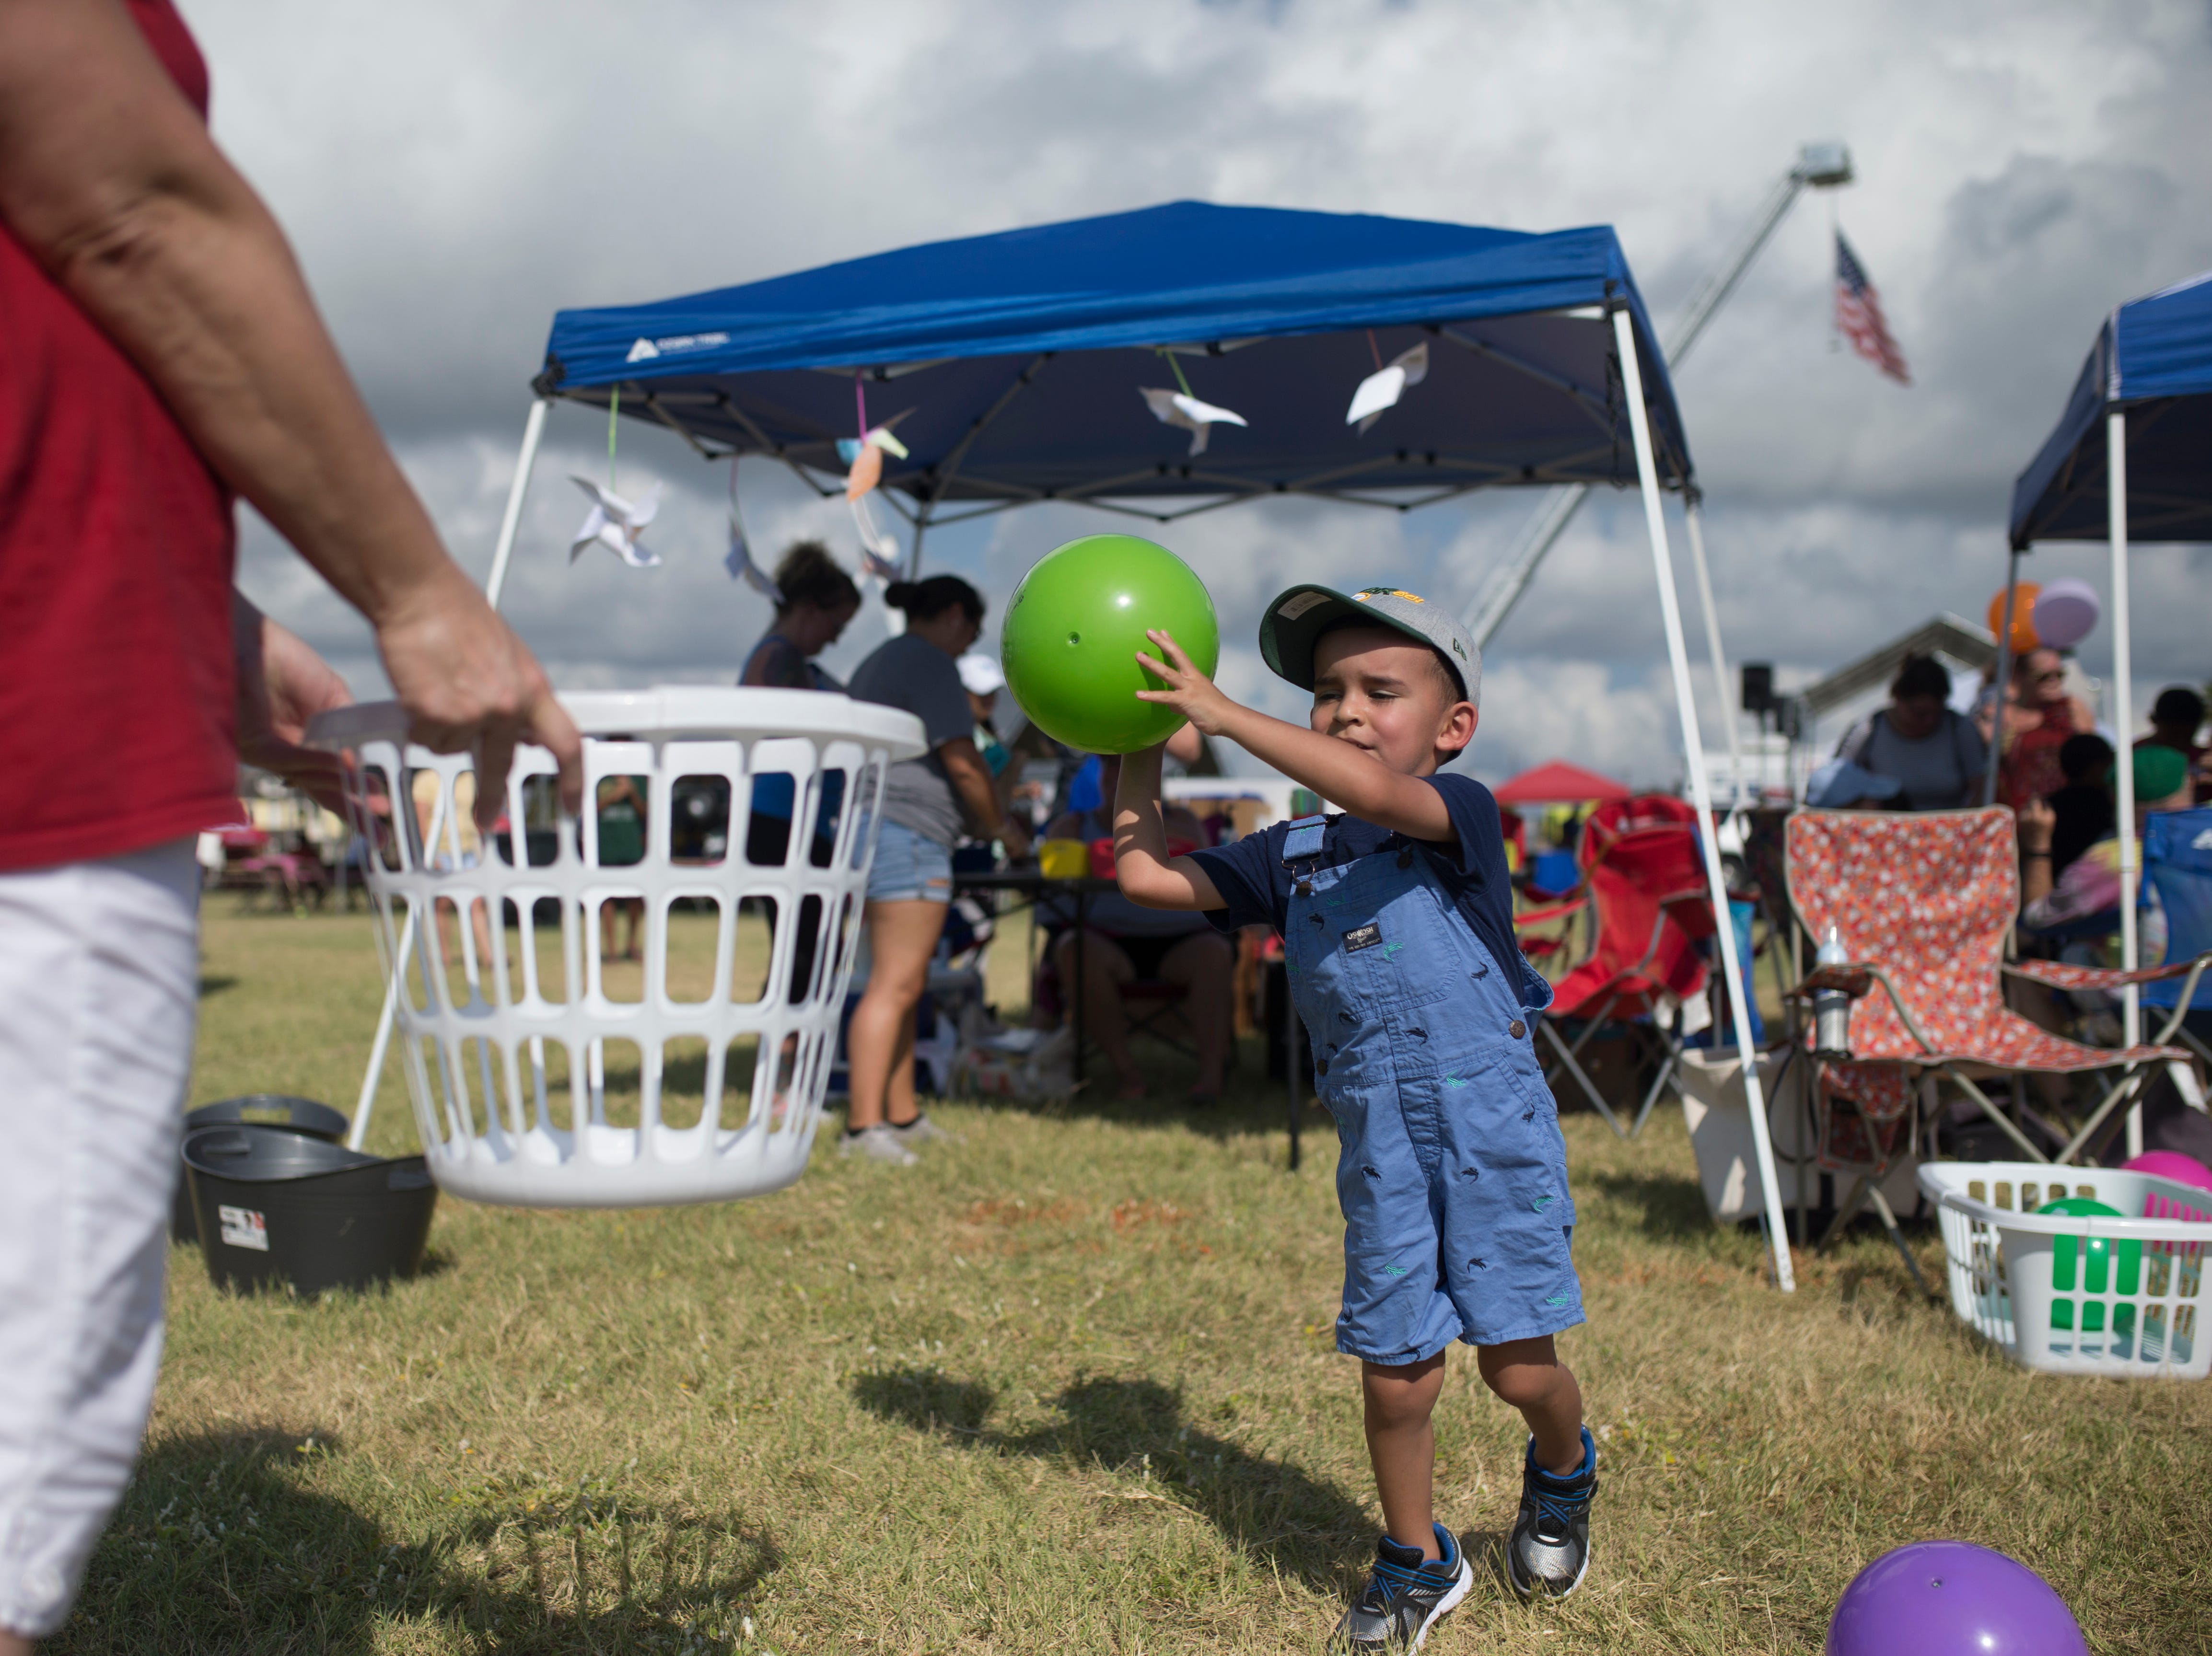 Dominic Ebel, 3, throws a ball into a basket during a remembrance ceremony to honor first responders for the anniversary of Hurricane Harvey on Saturday, Aug. 25, 2018 in Rockport.